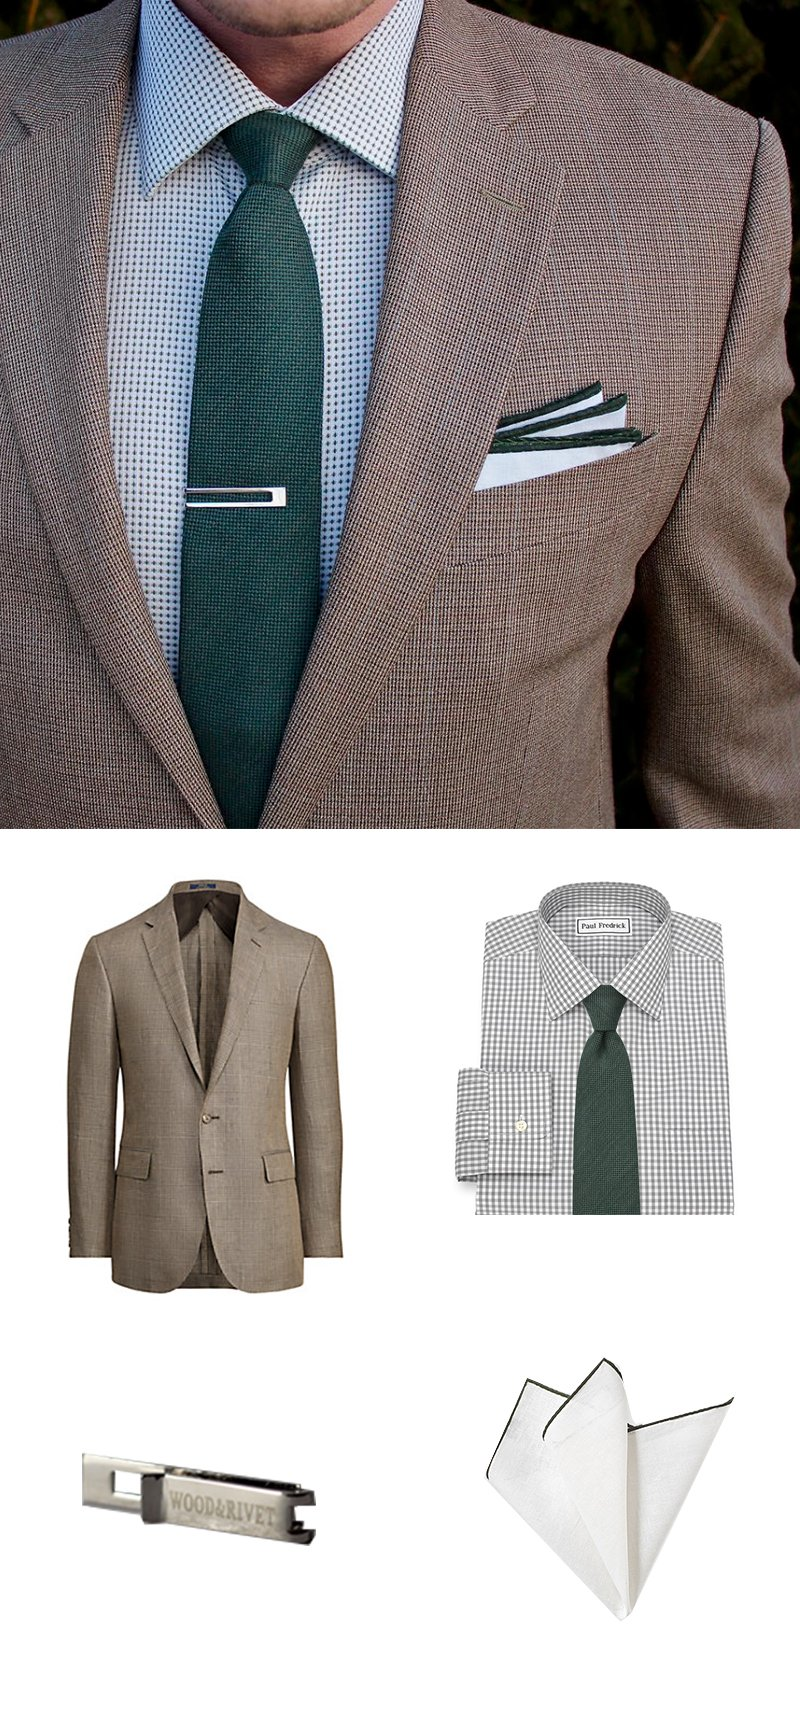 Designer Men's Fashion in Browns and Greens